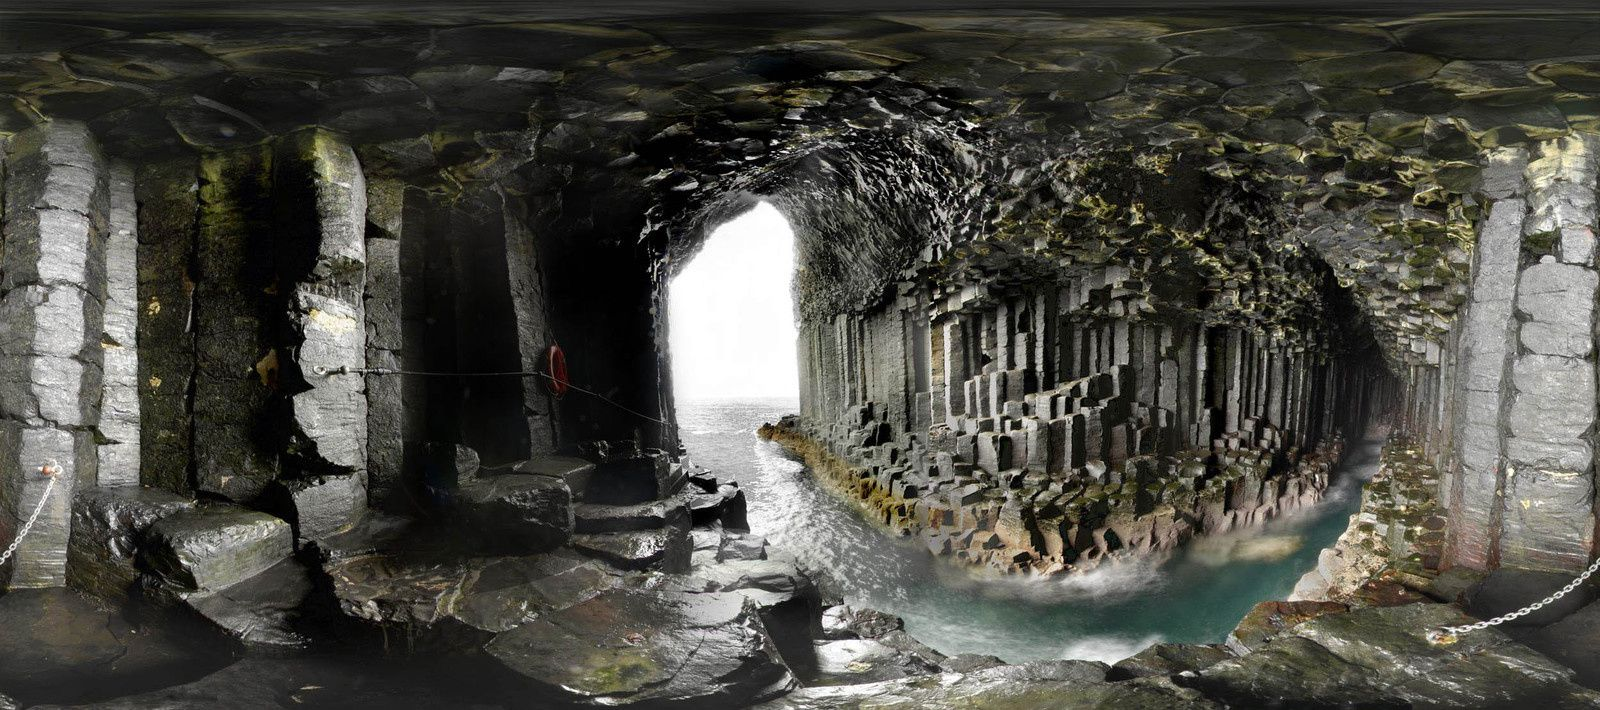 L'intérieur de Fingal's cave , au fish-eye - photo Le Monde.fr